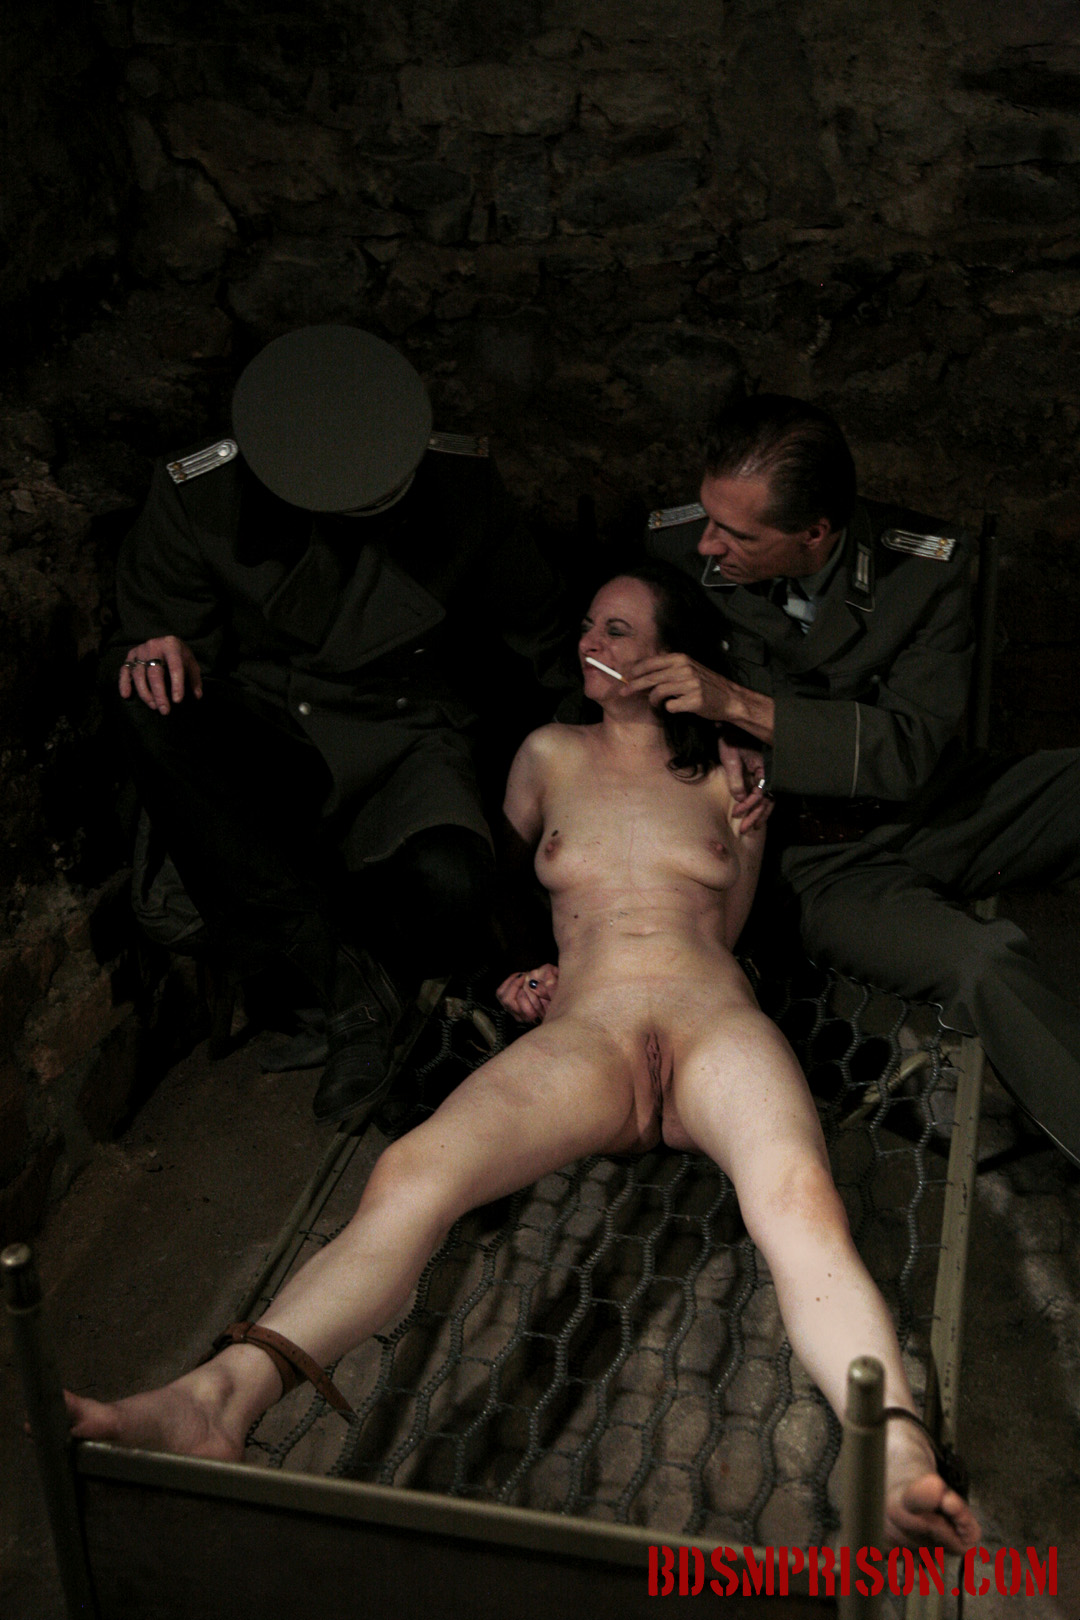 Nadja endures domination bondage nipple tormented with cigarettes. Nadja, a crazy young slut, mimes innocent when she wakes up bound to a bed frame in the basement of our institute. She's been charged with prostitution and has earned sex slave traininig. A prison guard welcomes Nadja to her a punishment consisting of two BDSM Prison Masters, domination, humiliation, fingering, spanking, smacking, whipping, bondage, breast, cunt and nipple anguished with cigarettes and a lighter. She pleads for mercy, swearing she's innocent. Obviously her Master does not agree.